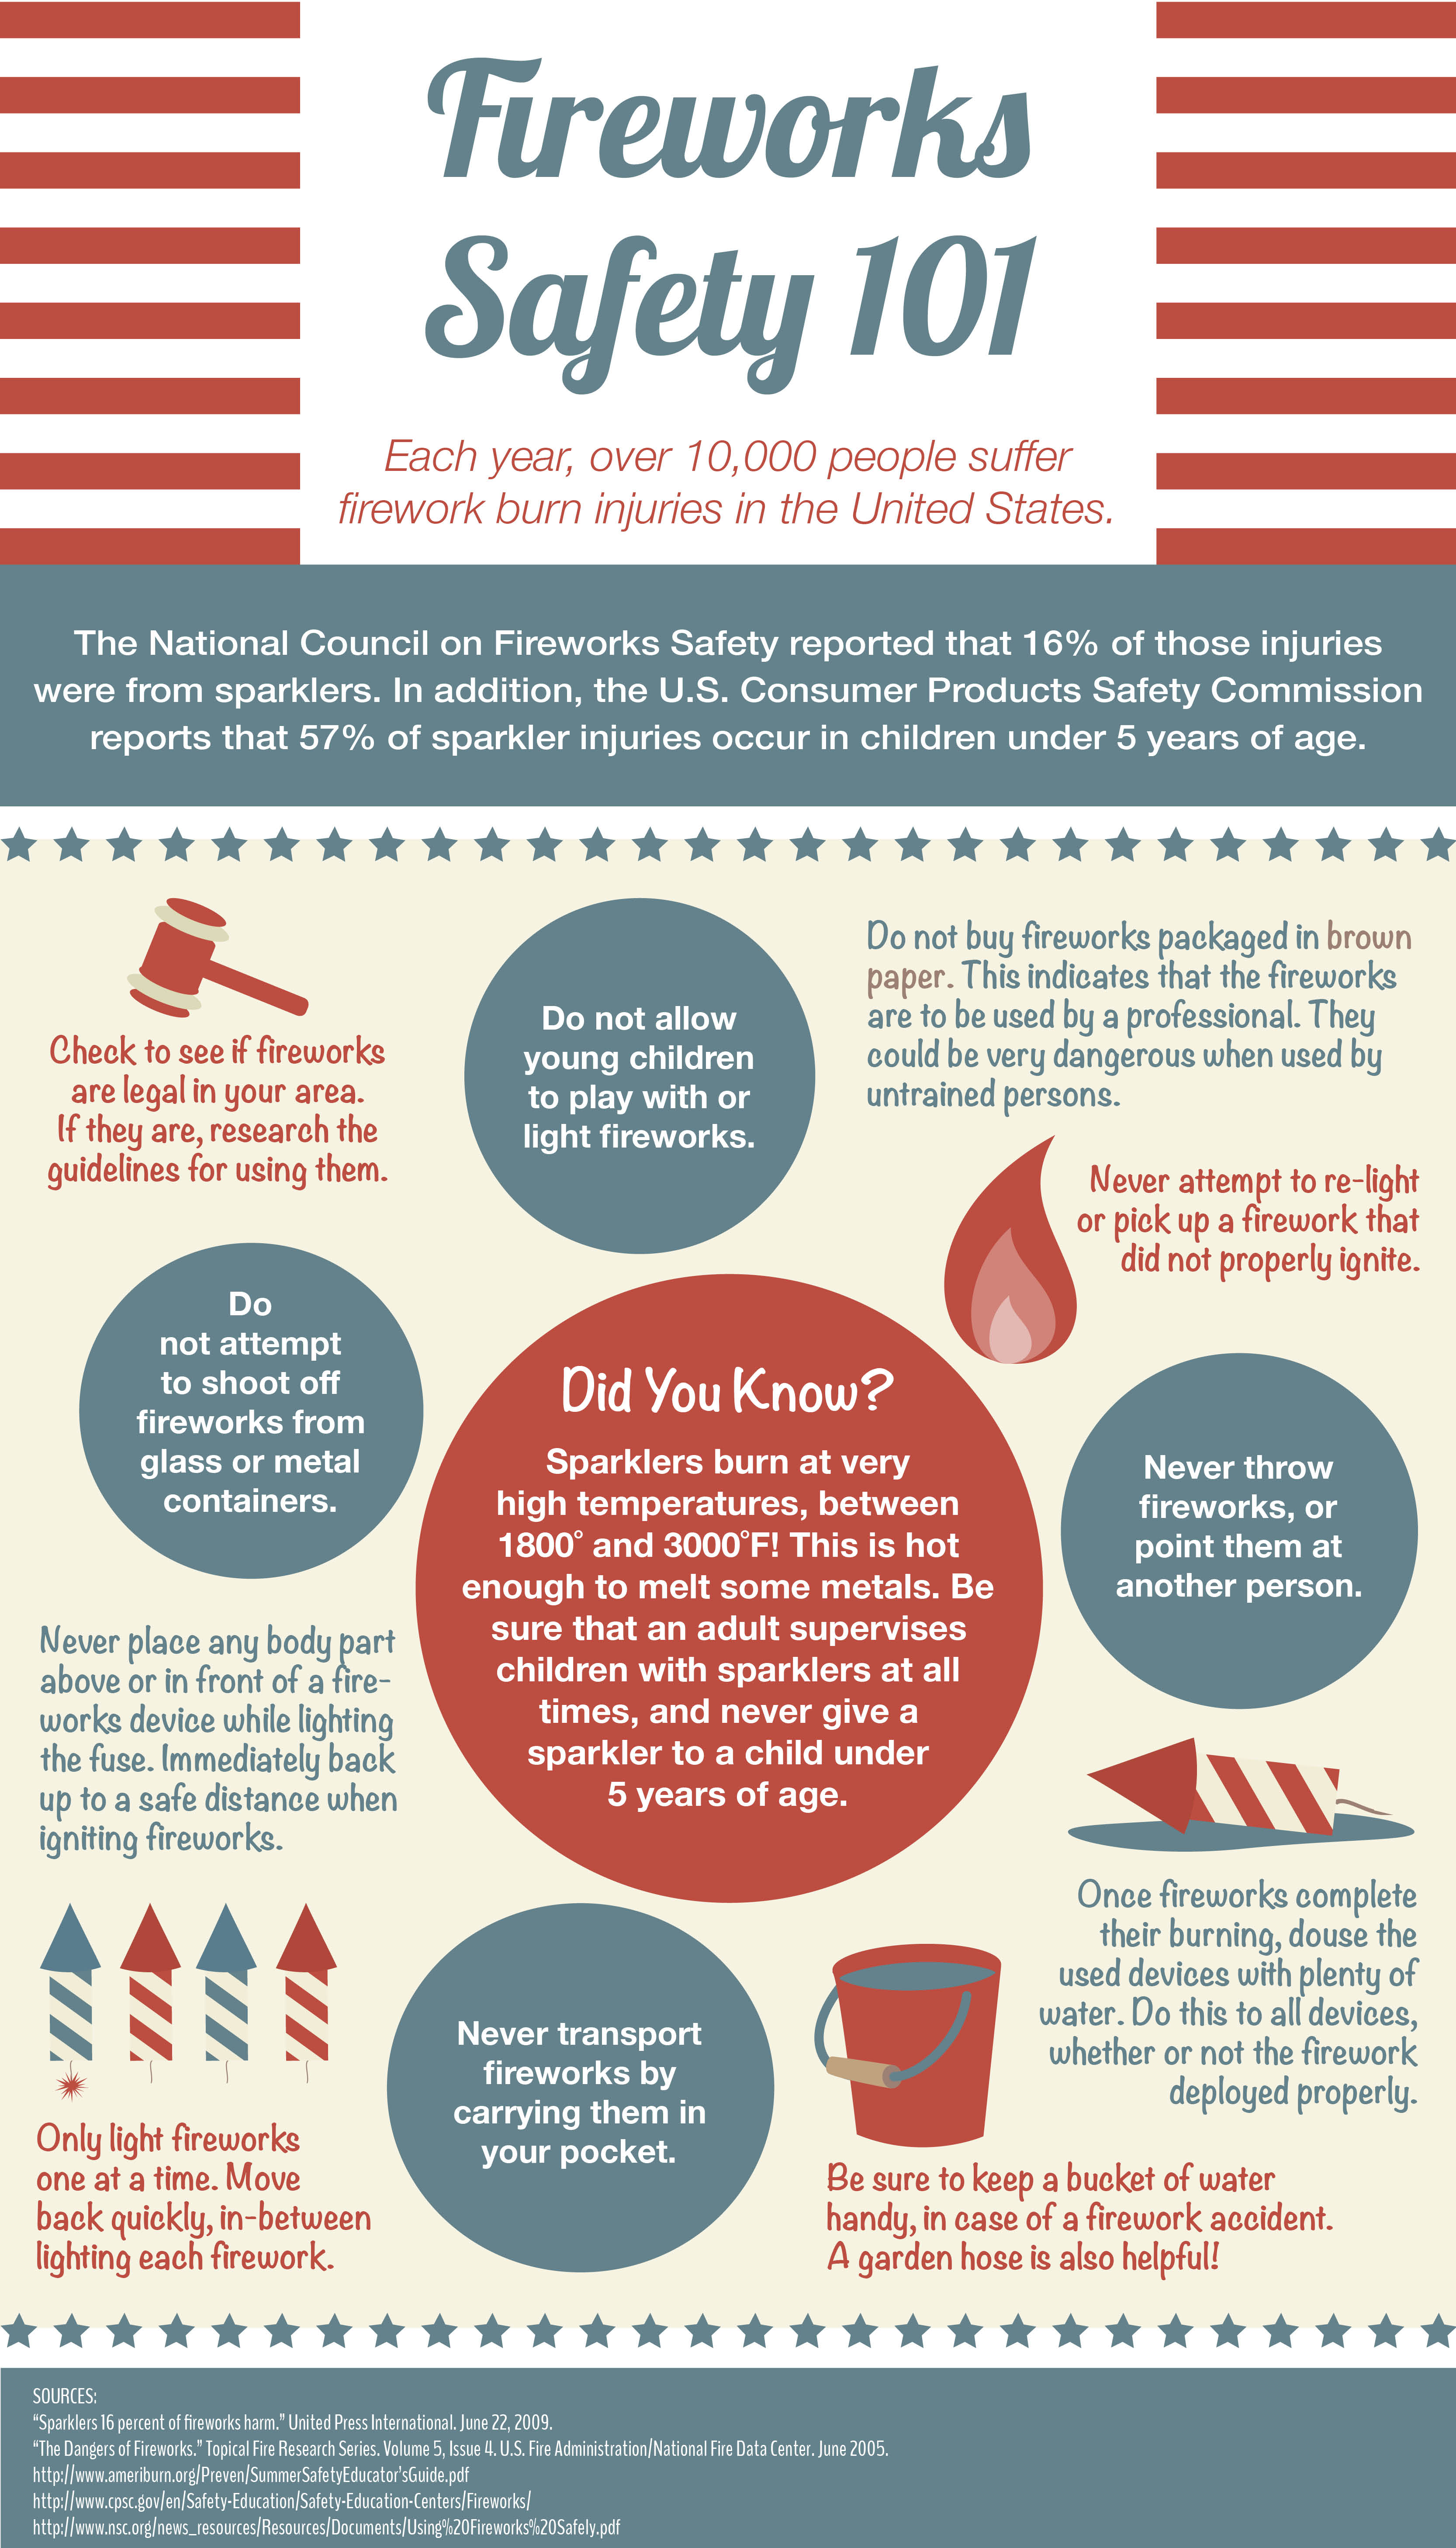 Fireworks Safety For The Fourth Of July